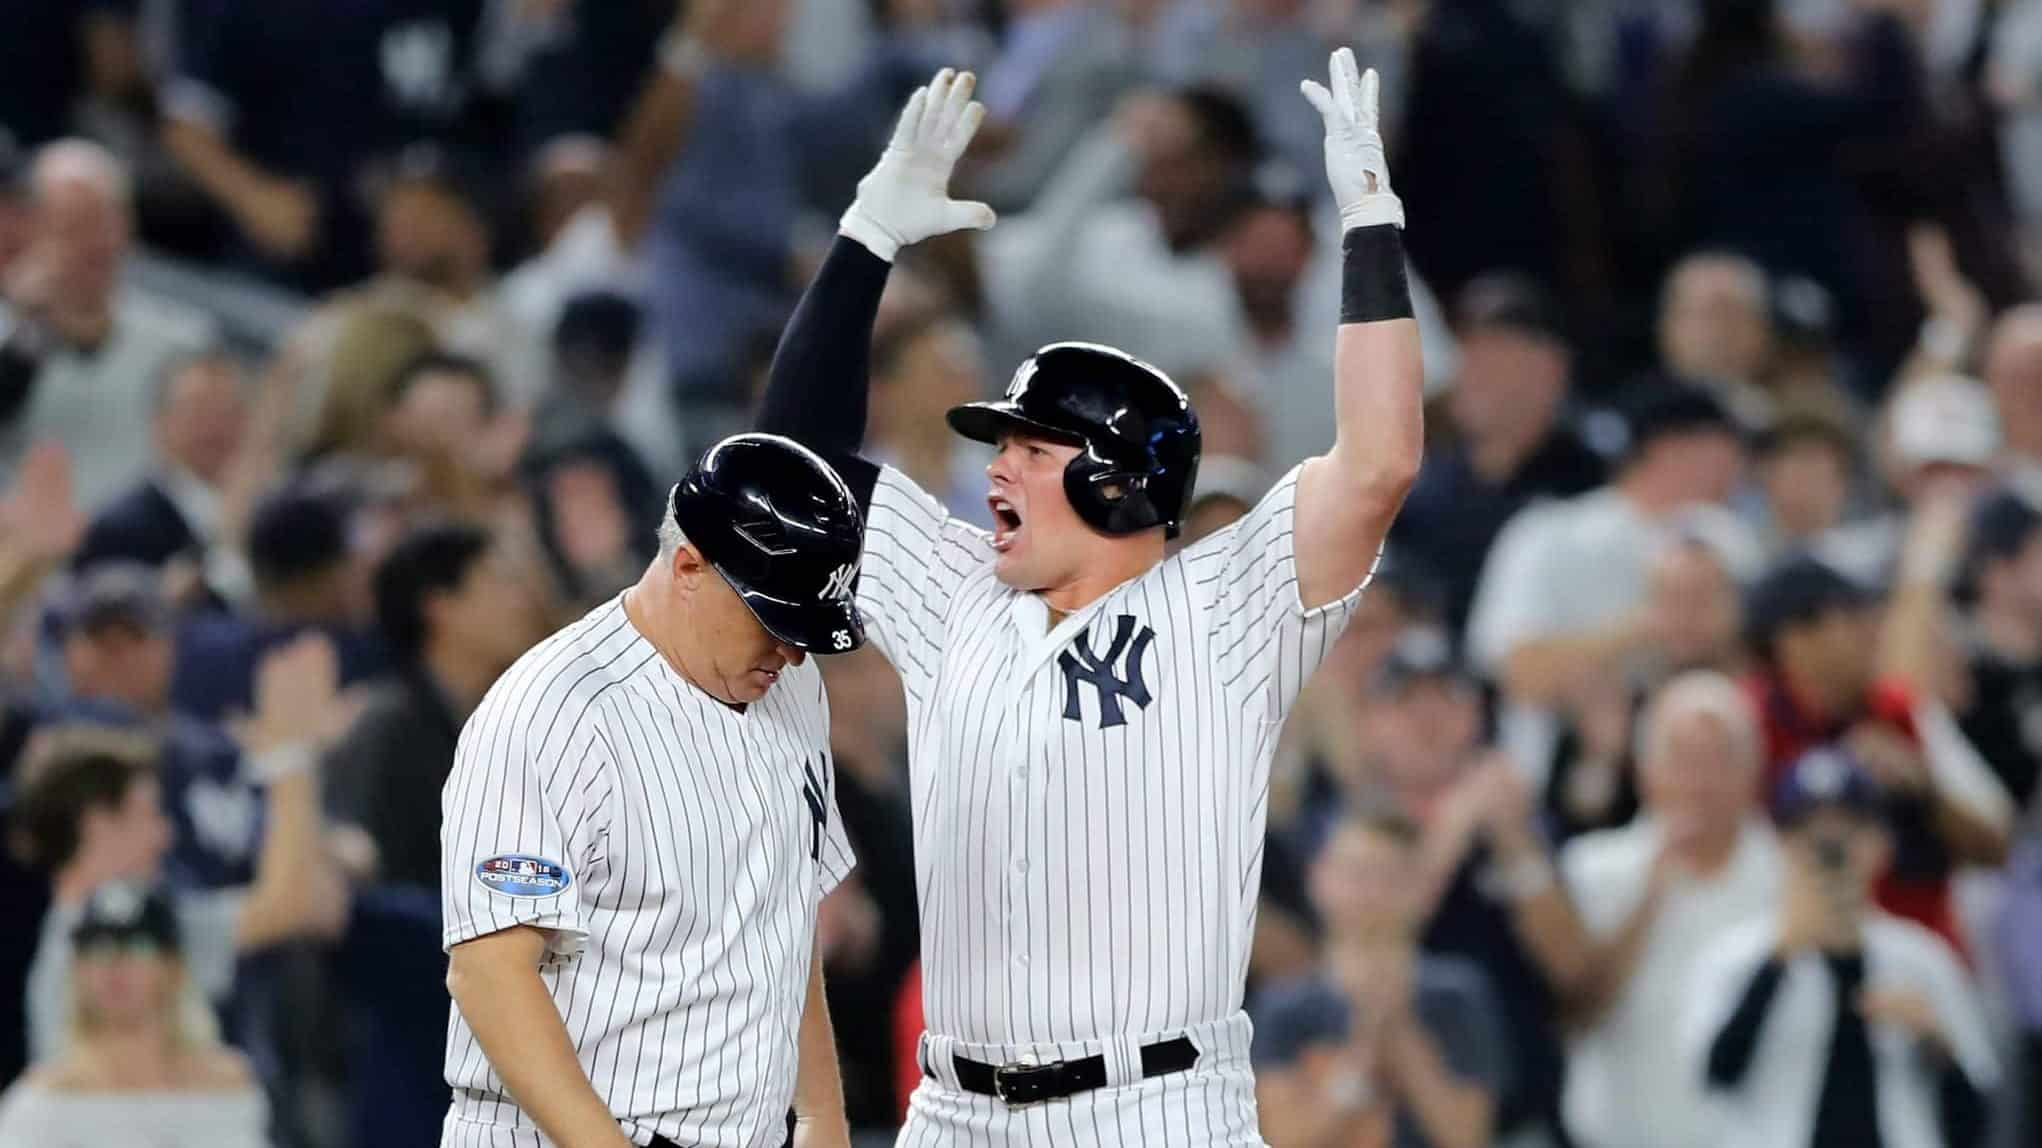 newest dfe8b 4d8a5 New York Yankees spring training: Intriguing position battles